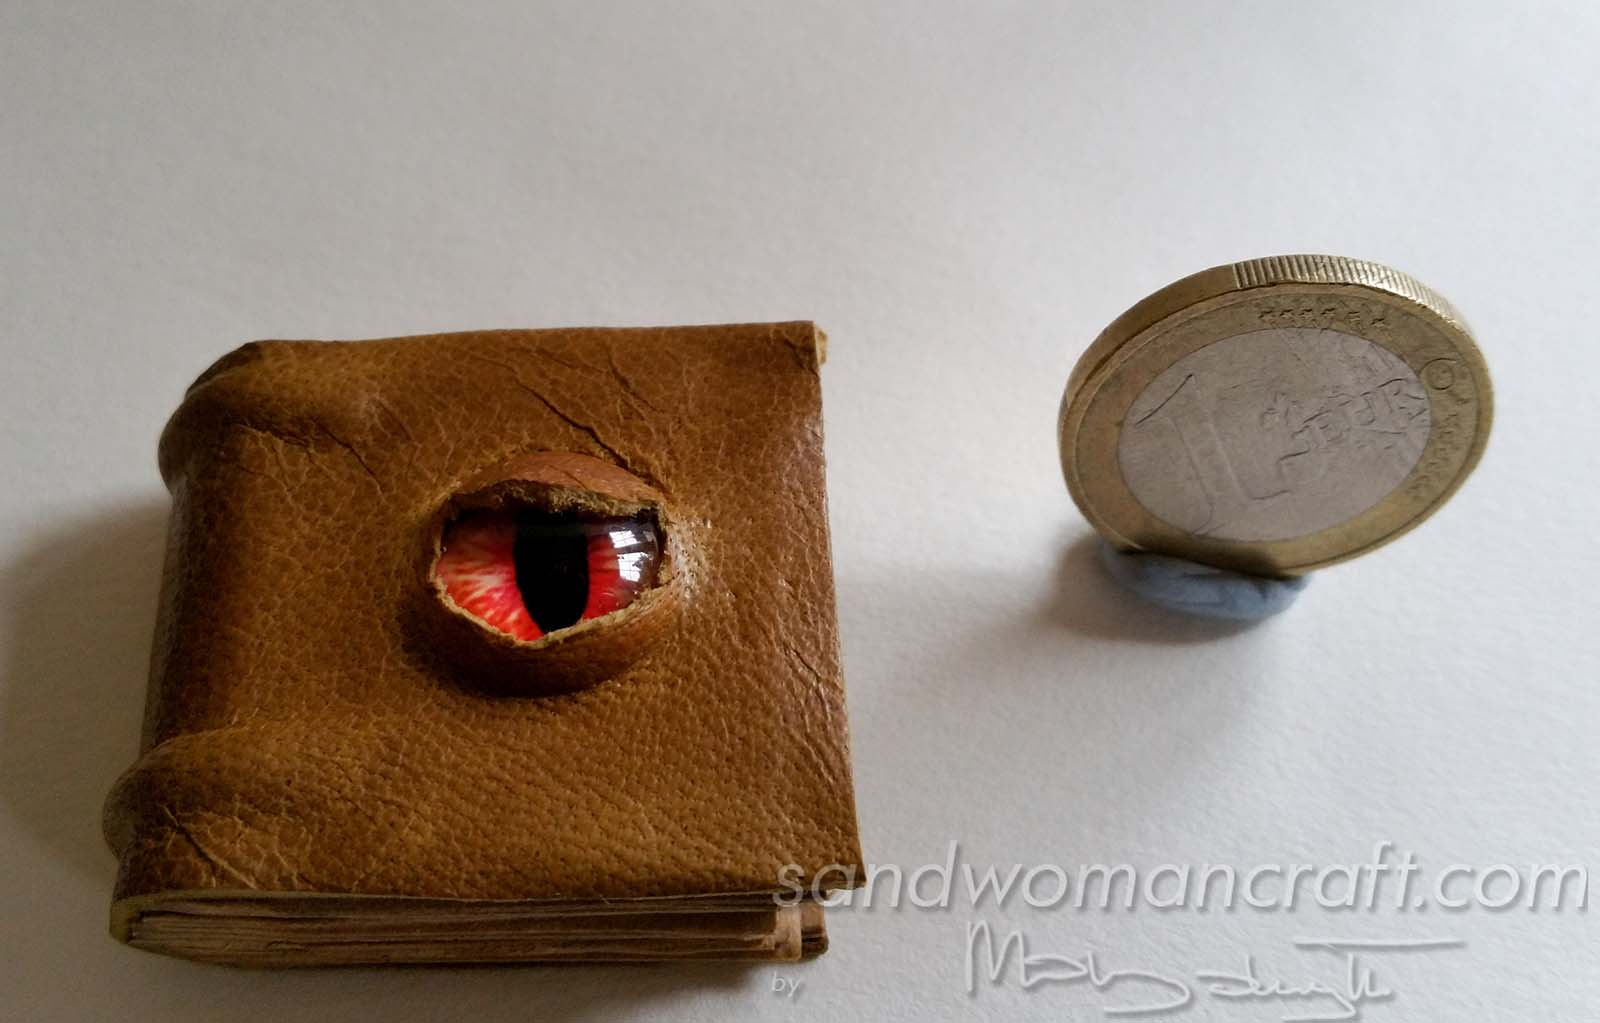 Miniature leather book with glass Dragon's Eye